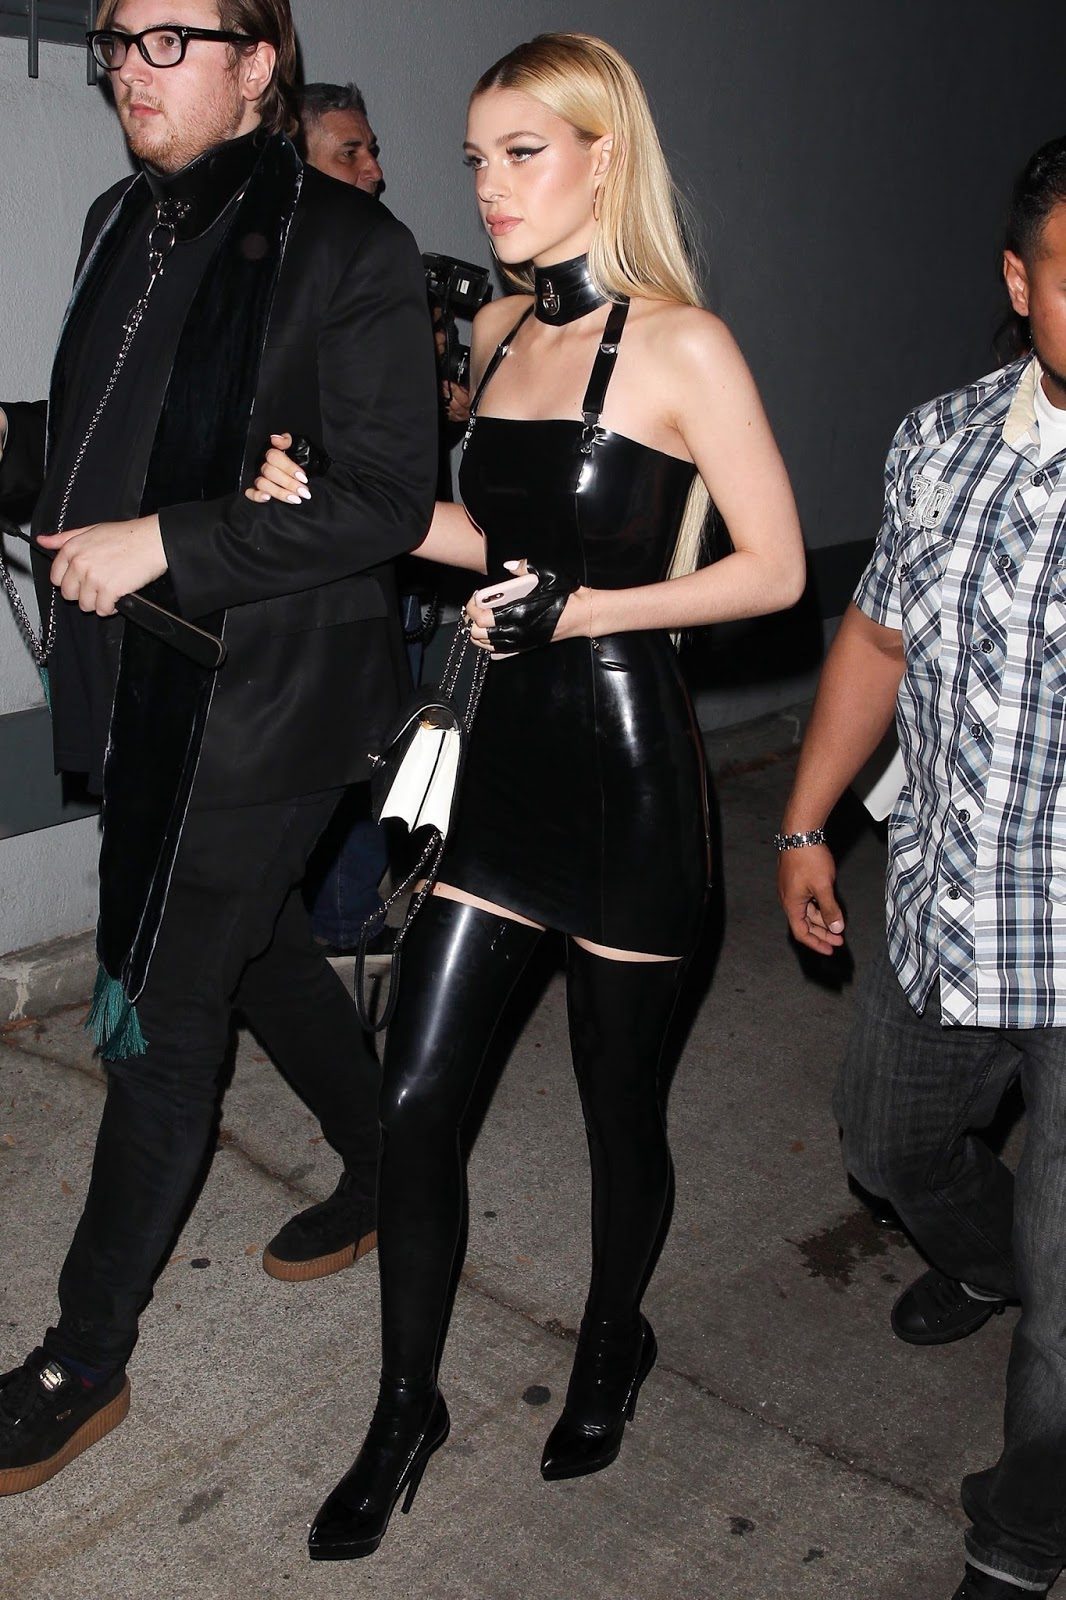 Lovely Ladies In Leather Nicola Peltz In A Latex Mini -8778